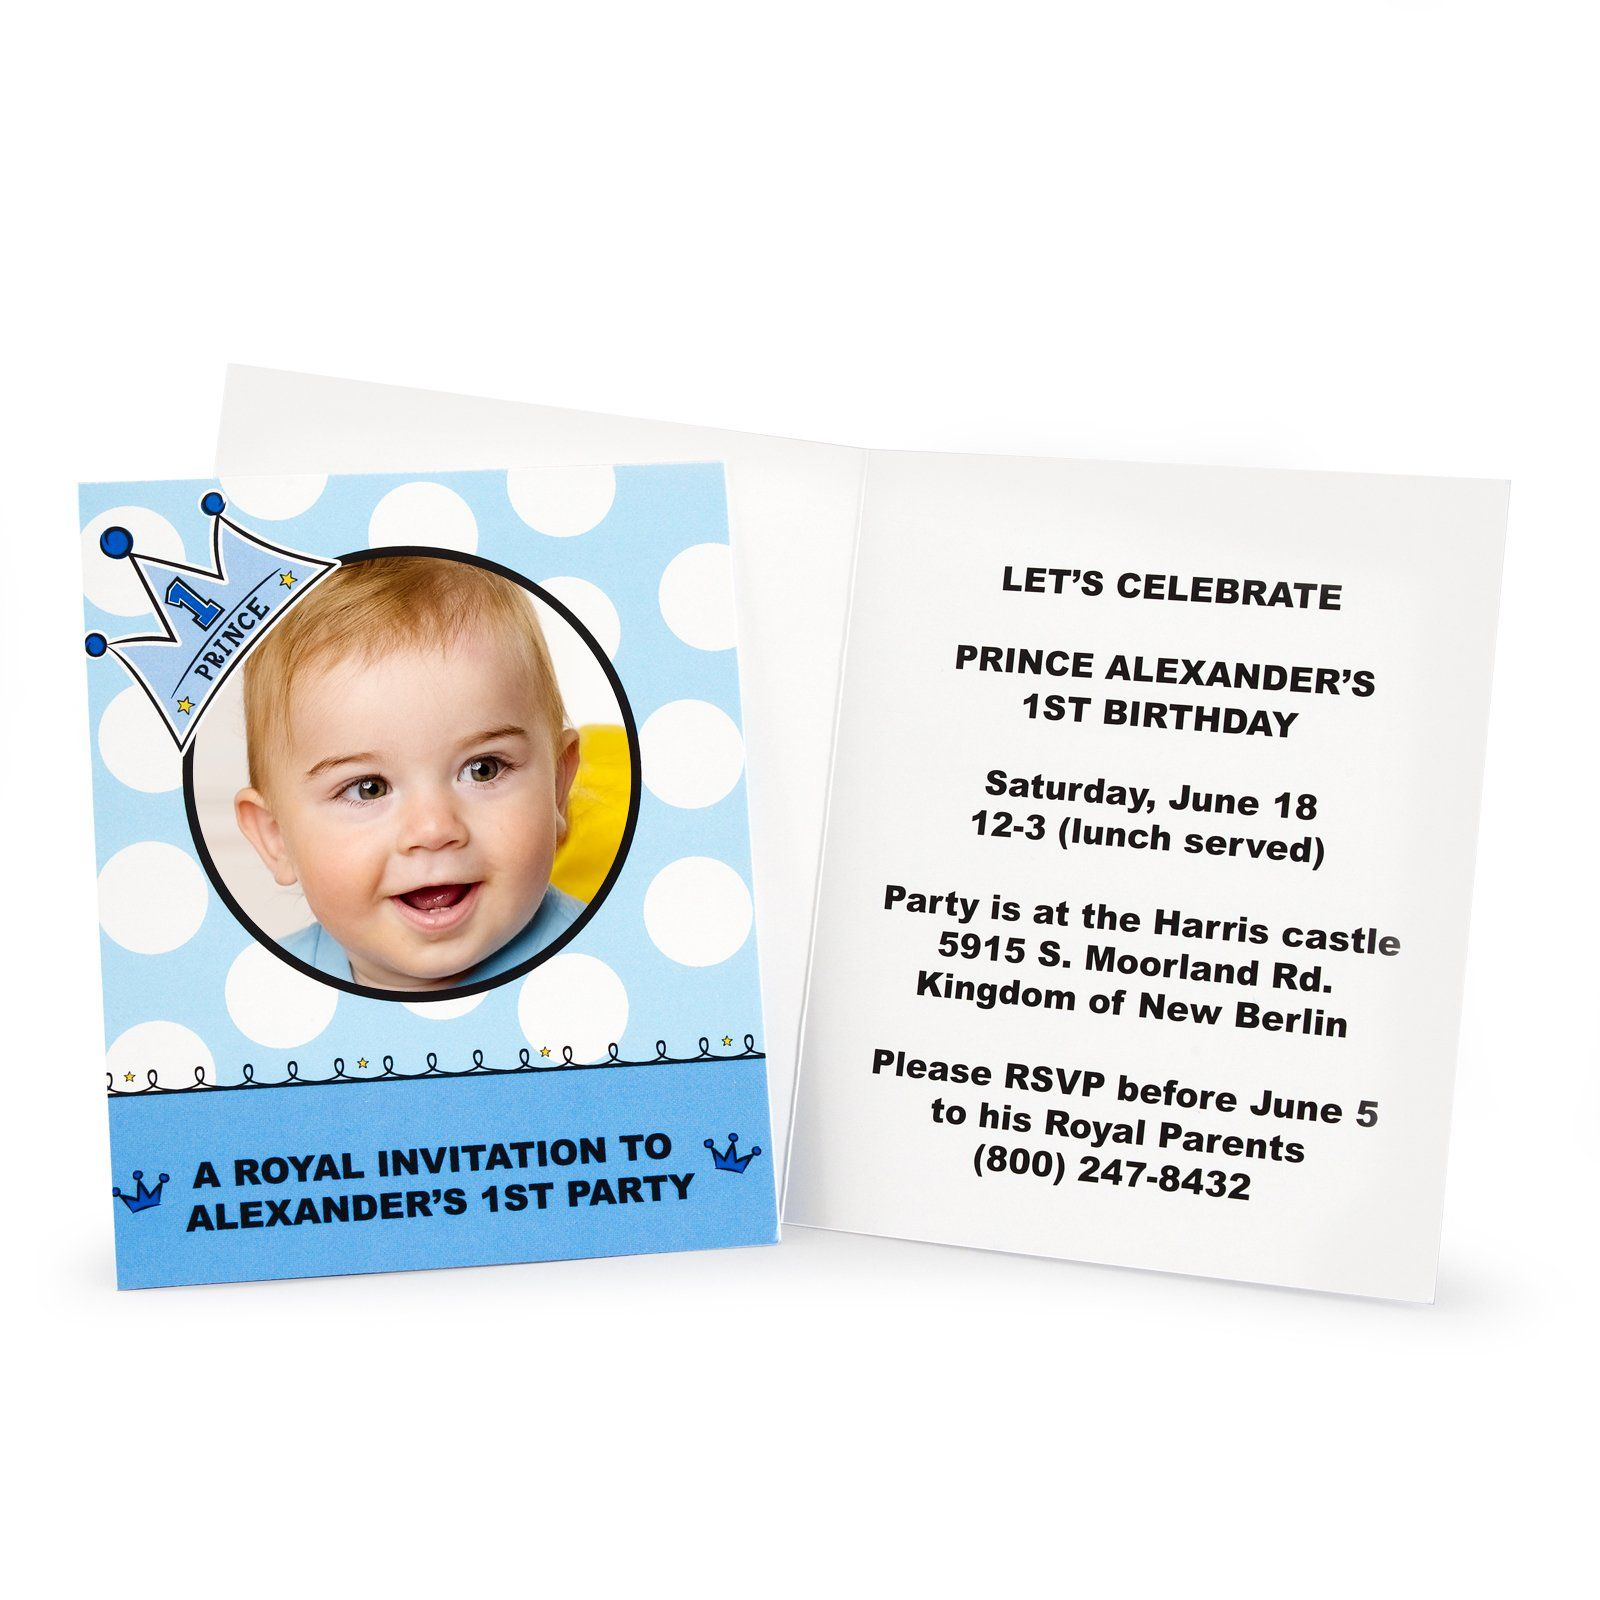 Lil prince 1st birthday personalized party invitations my little lil prince 1st birthday personalized party invitations filmwisefo